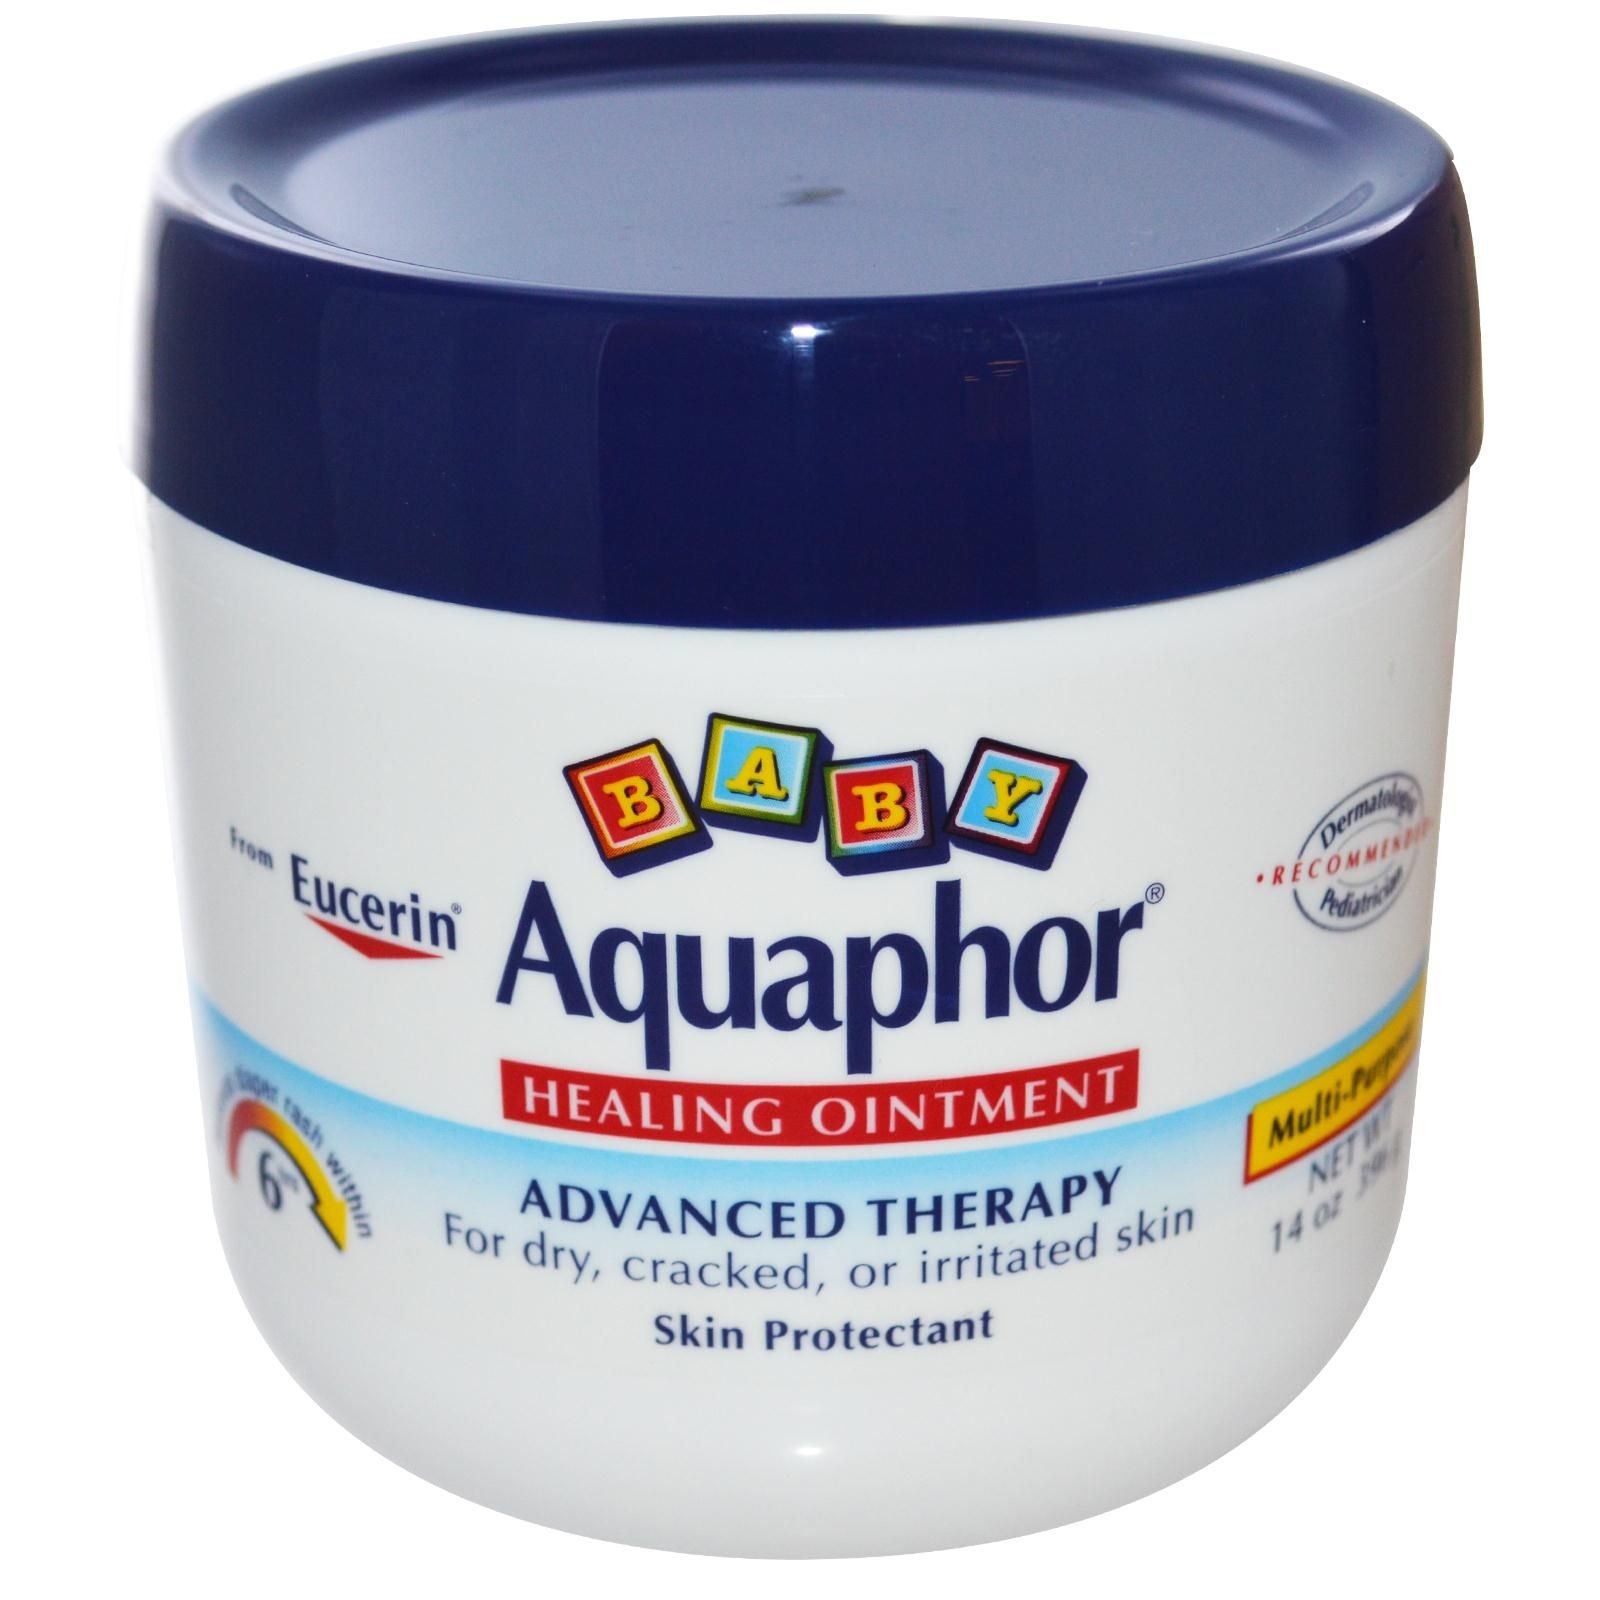 Use this instead of baby powder, I hear it works great and is safer than baby powder. Pediatricians no longer approve using baby powder because of the effect it can have on babies lungs